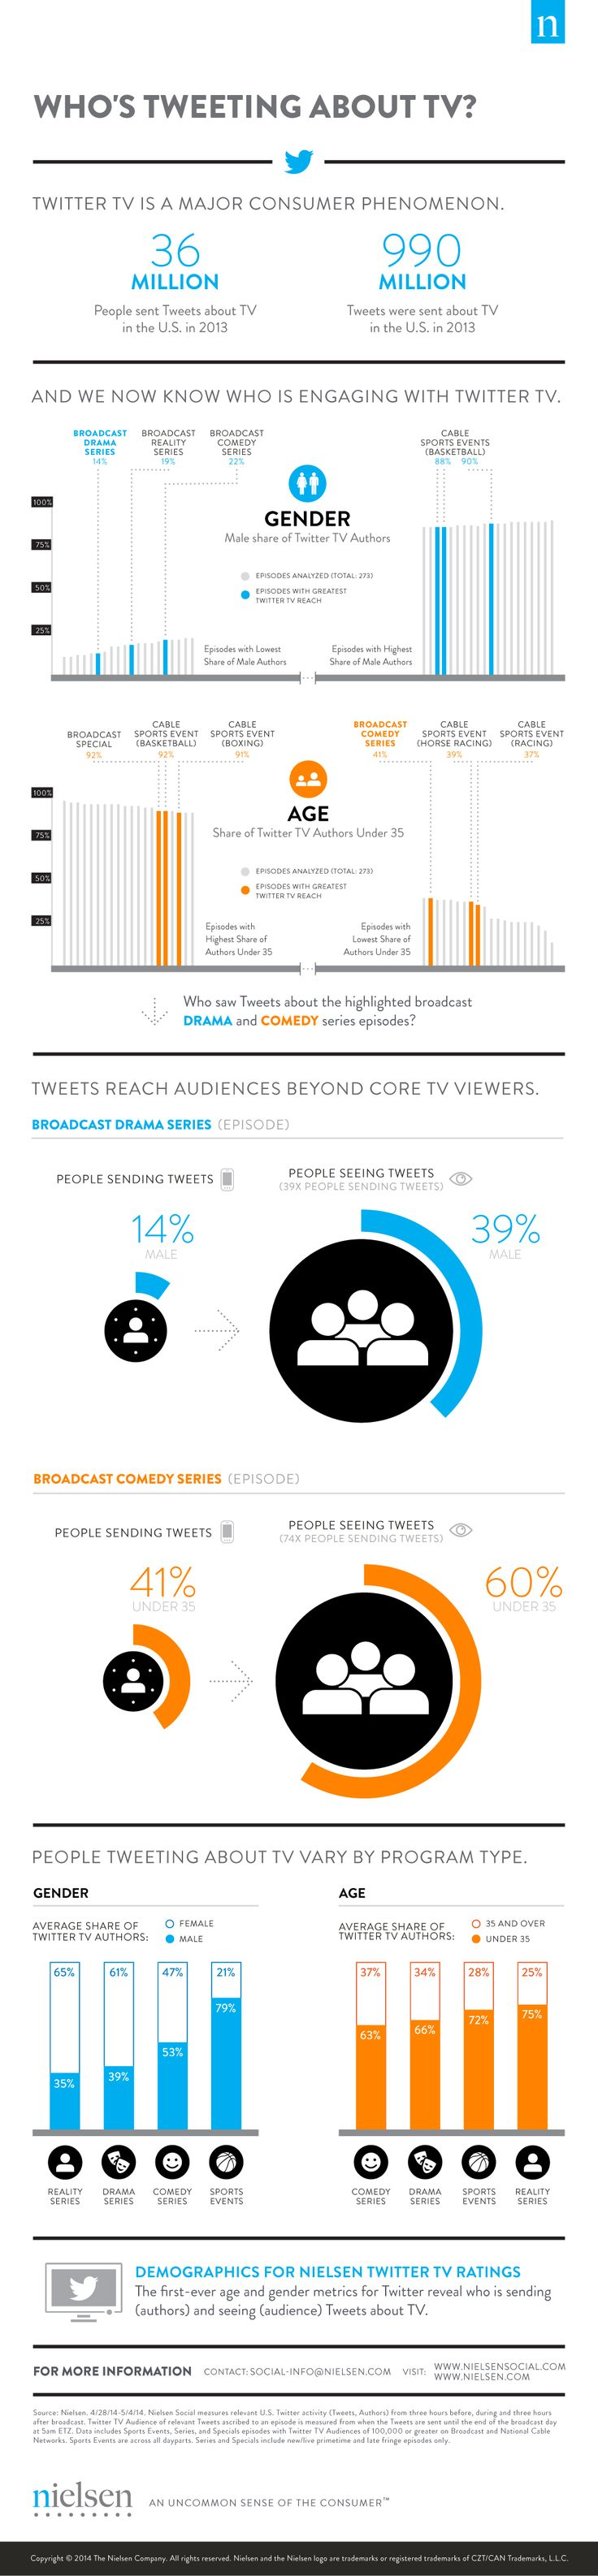 Who's tweeting about TV? - Nielsen Social